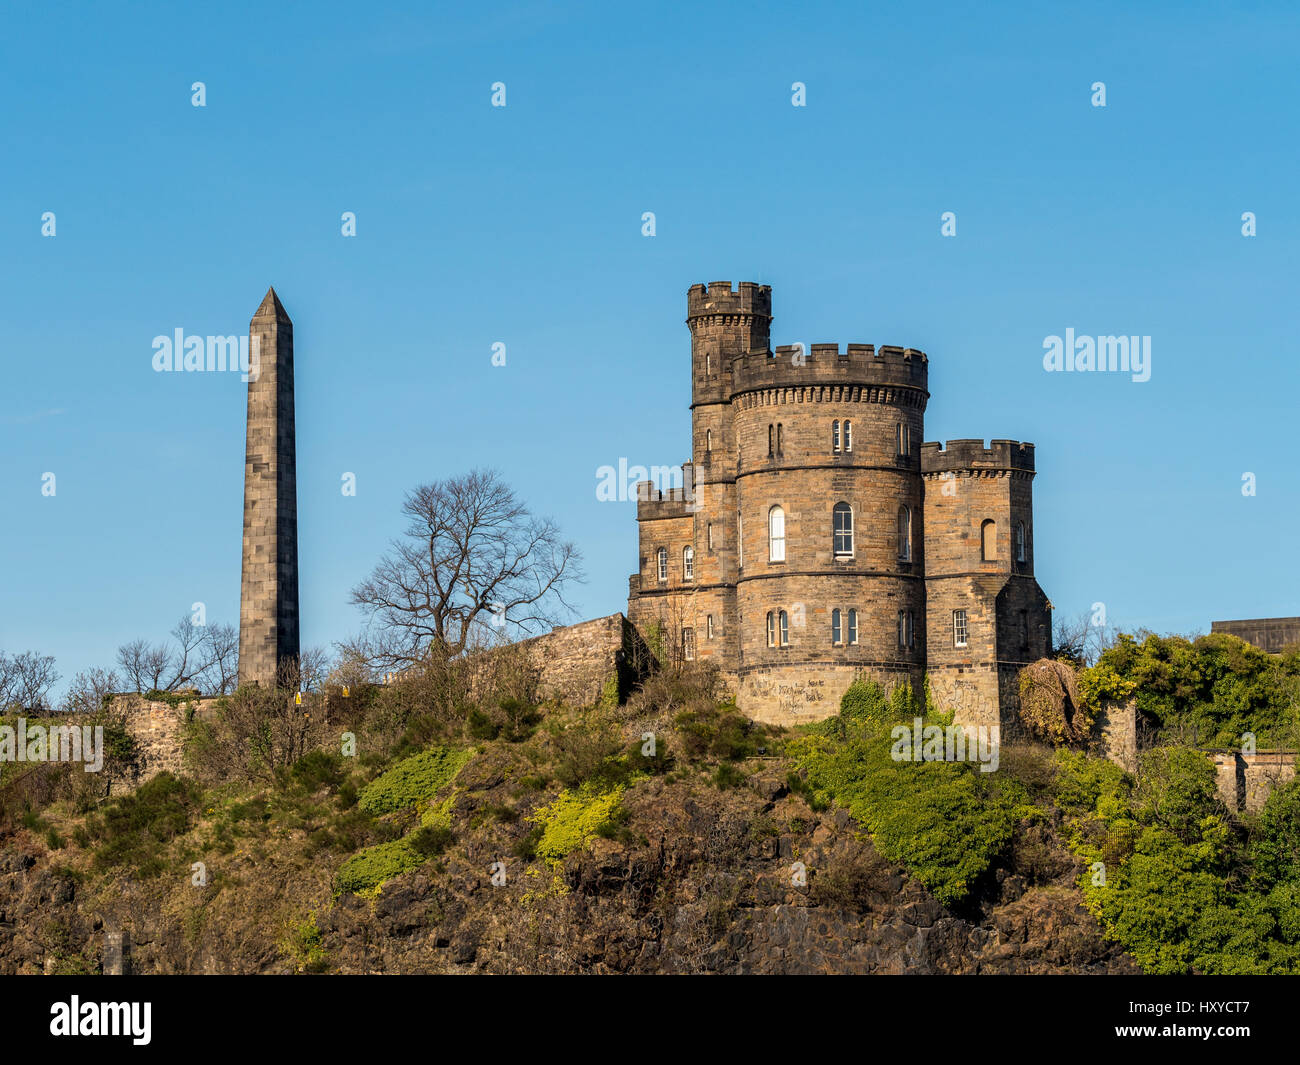 Political Martyrs Monument and The Governors House, Calton Hill, Edinburgh, Scotland. - Stock Image